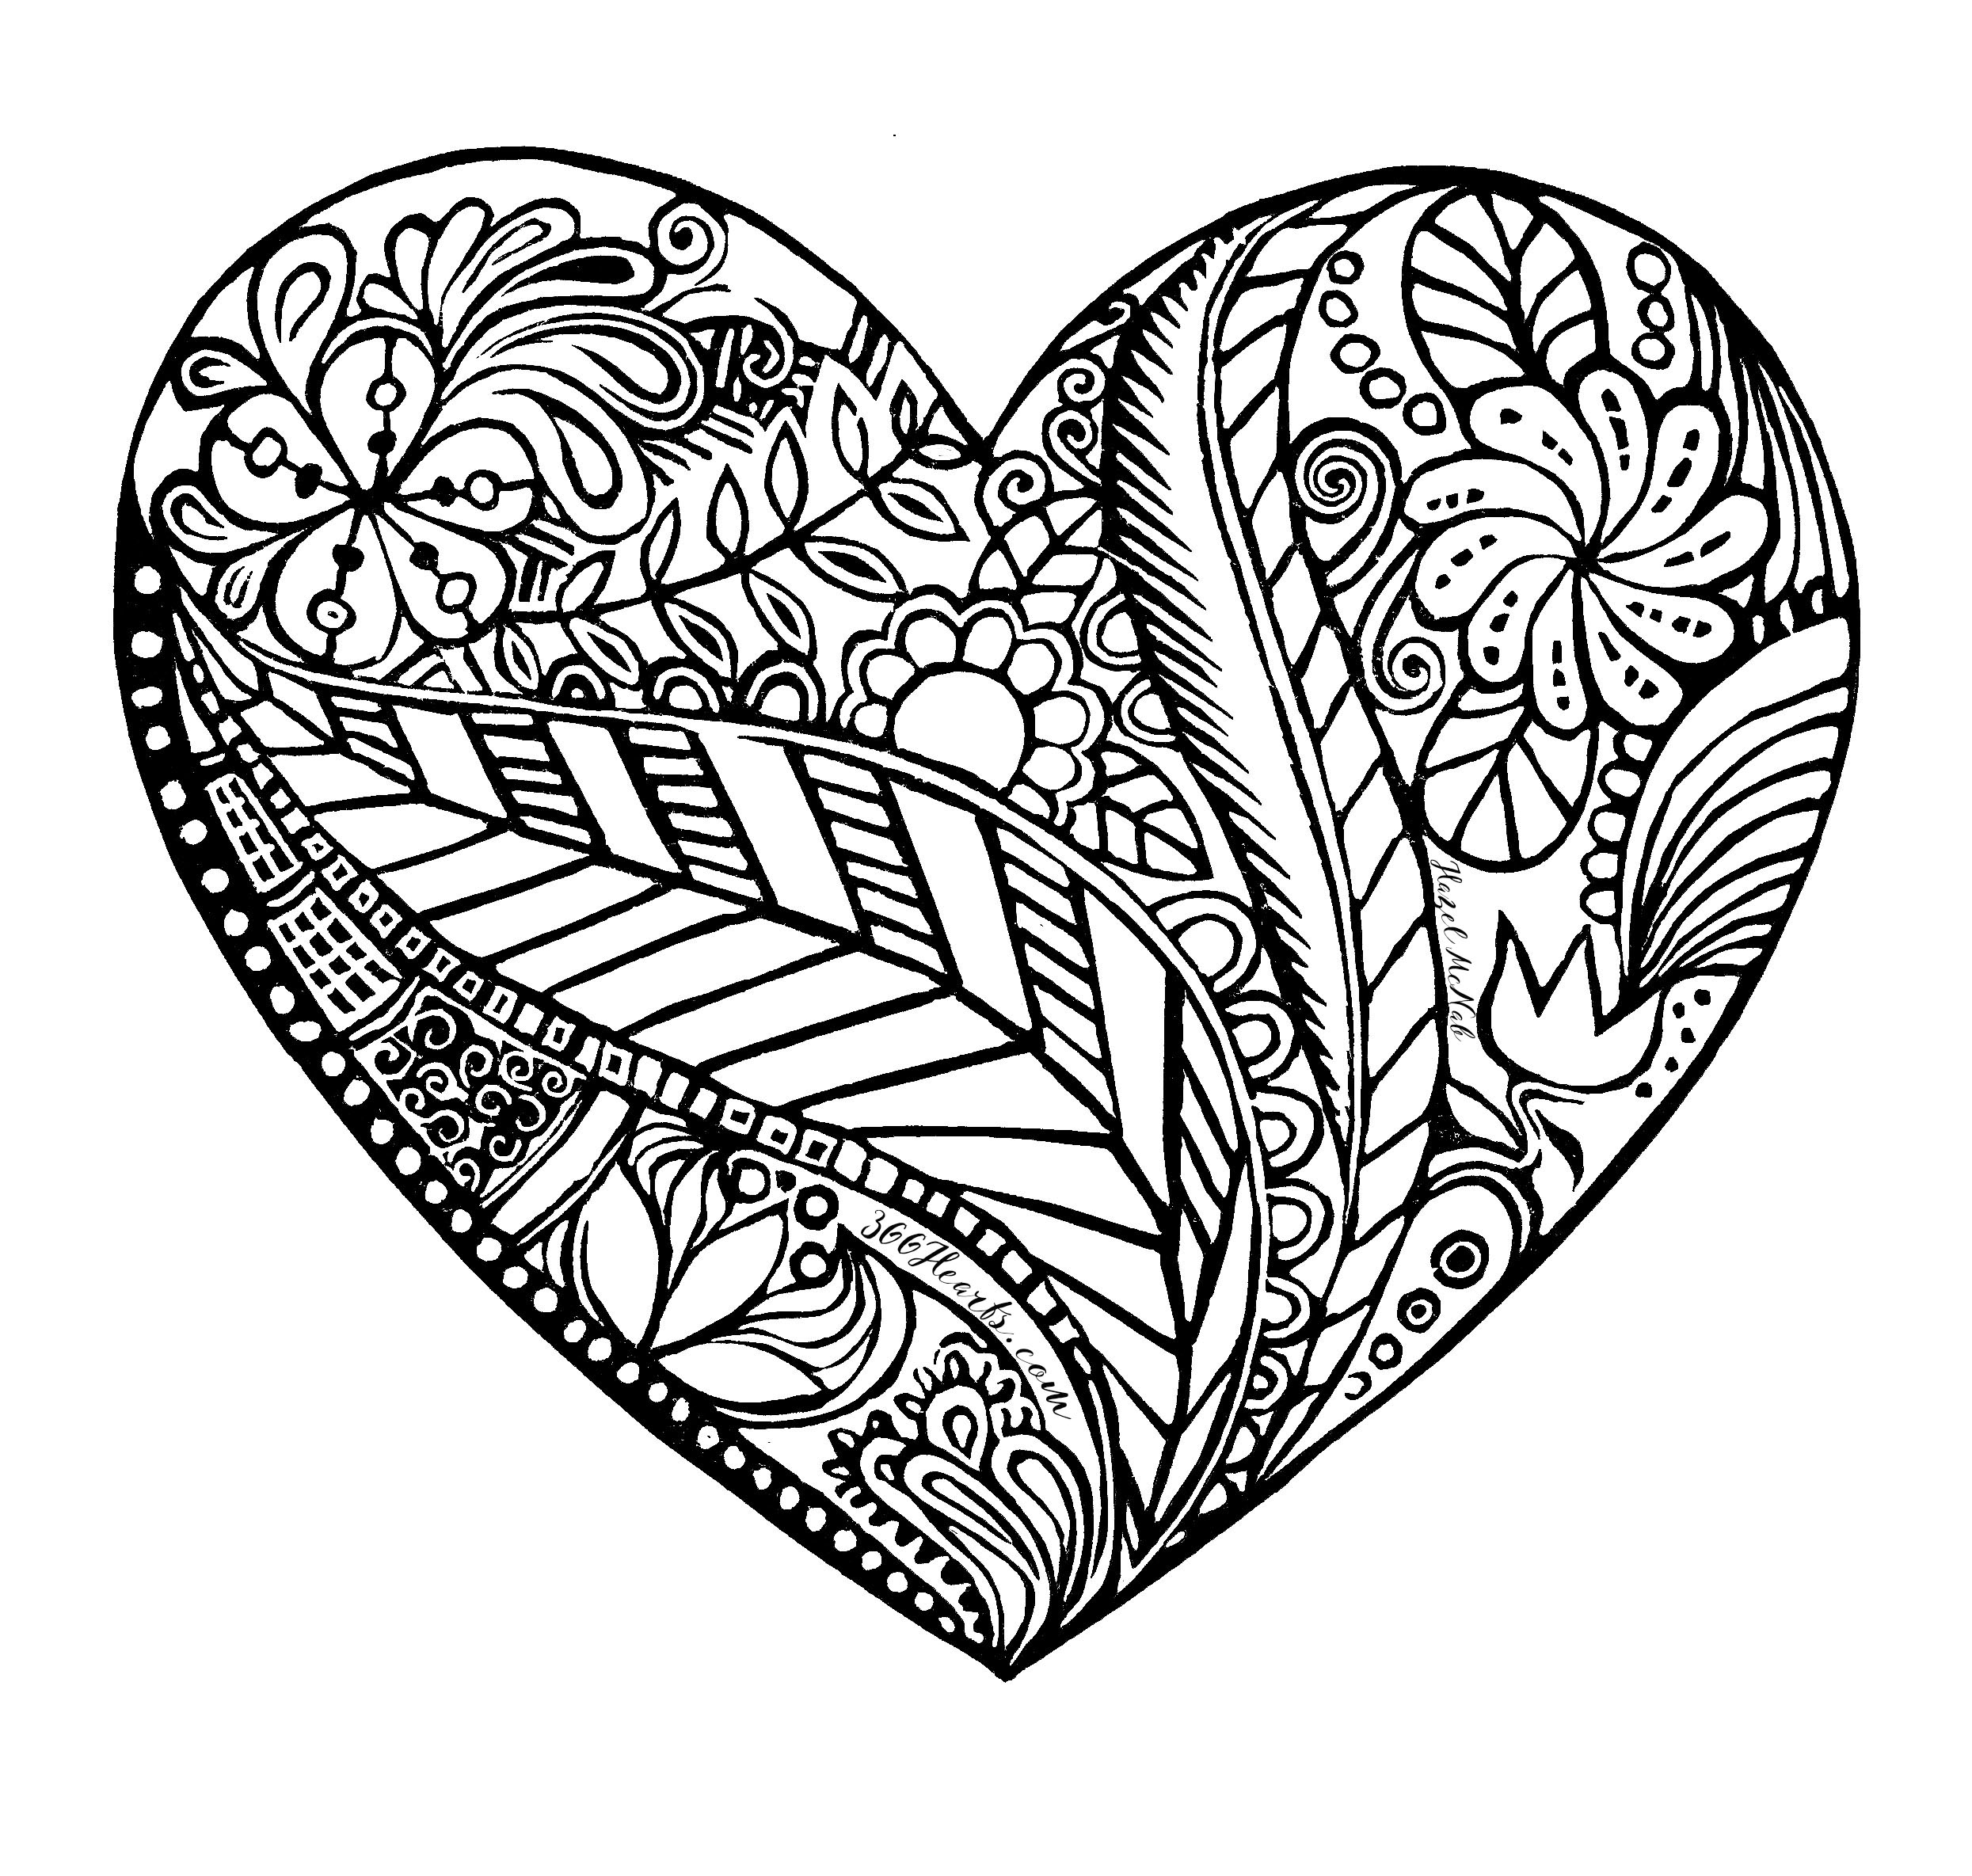 pictures of hearts to color printable heart coloring pages at getdrawings free download color hearts to of pictures